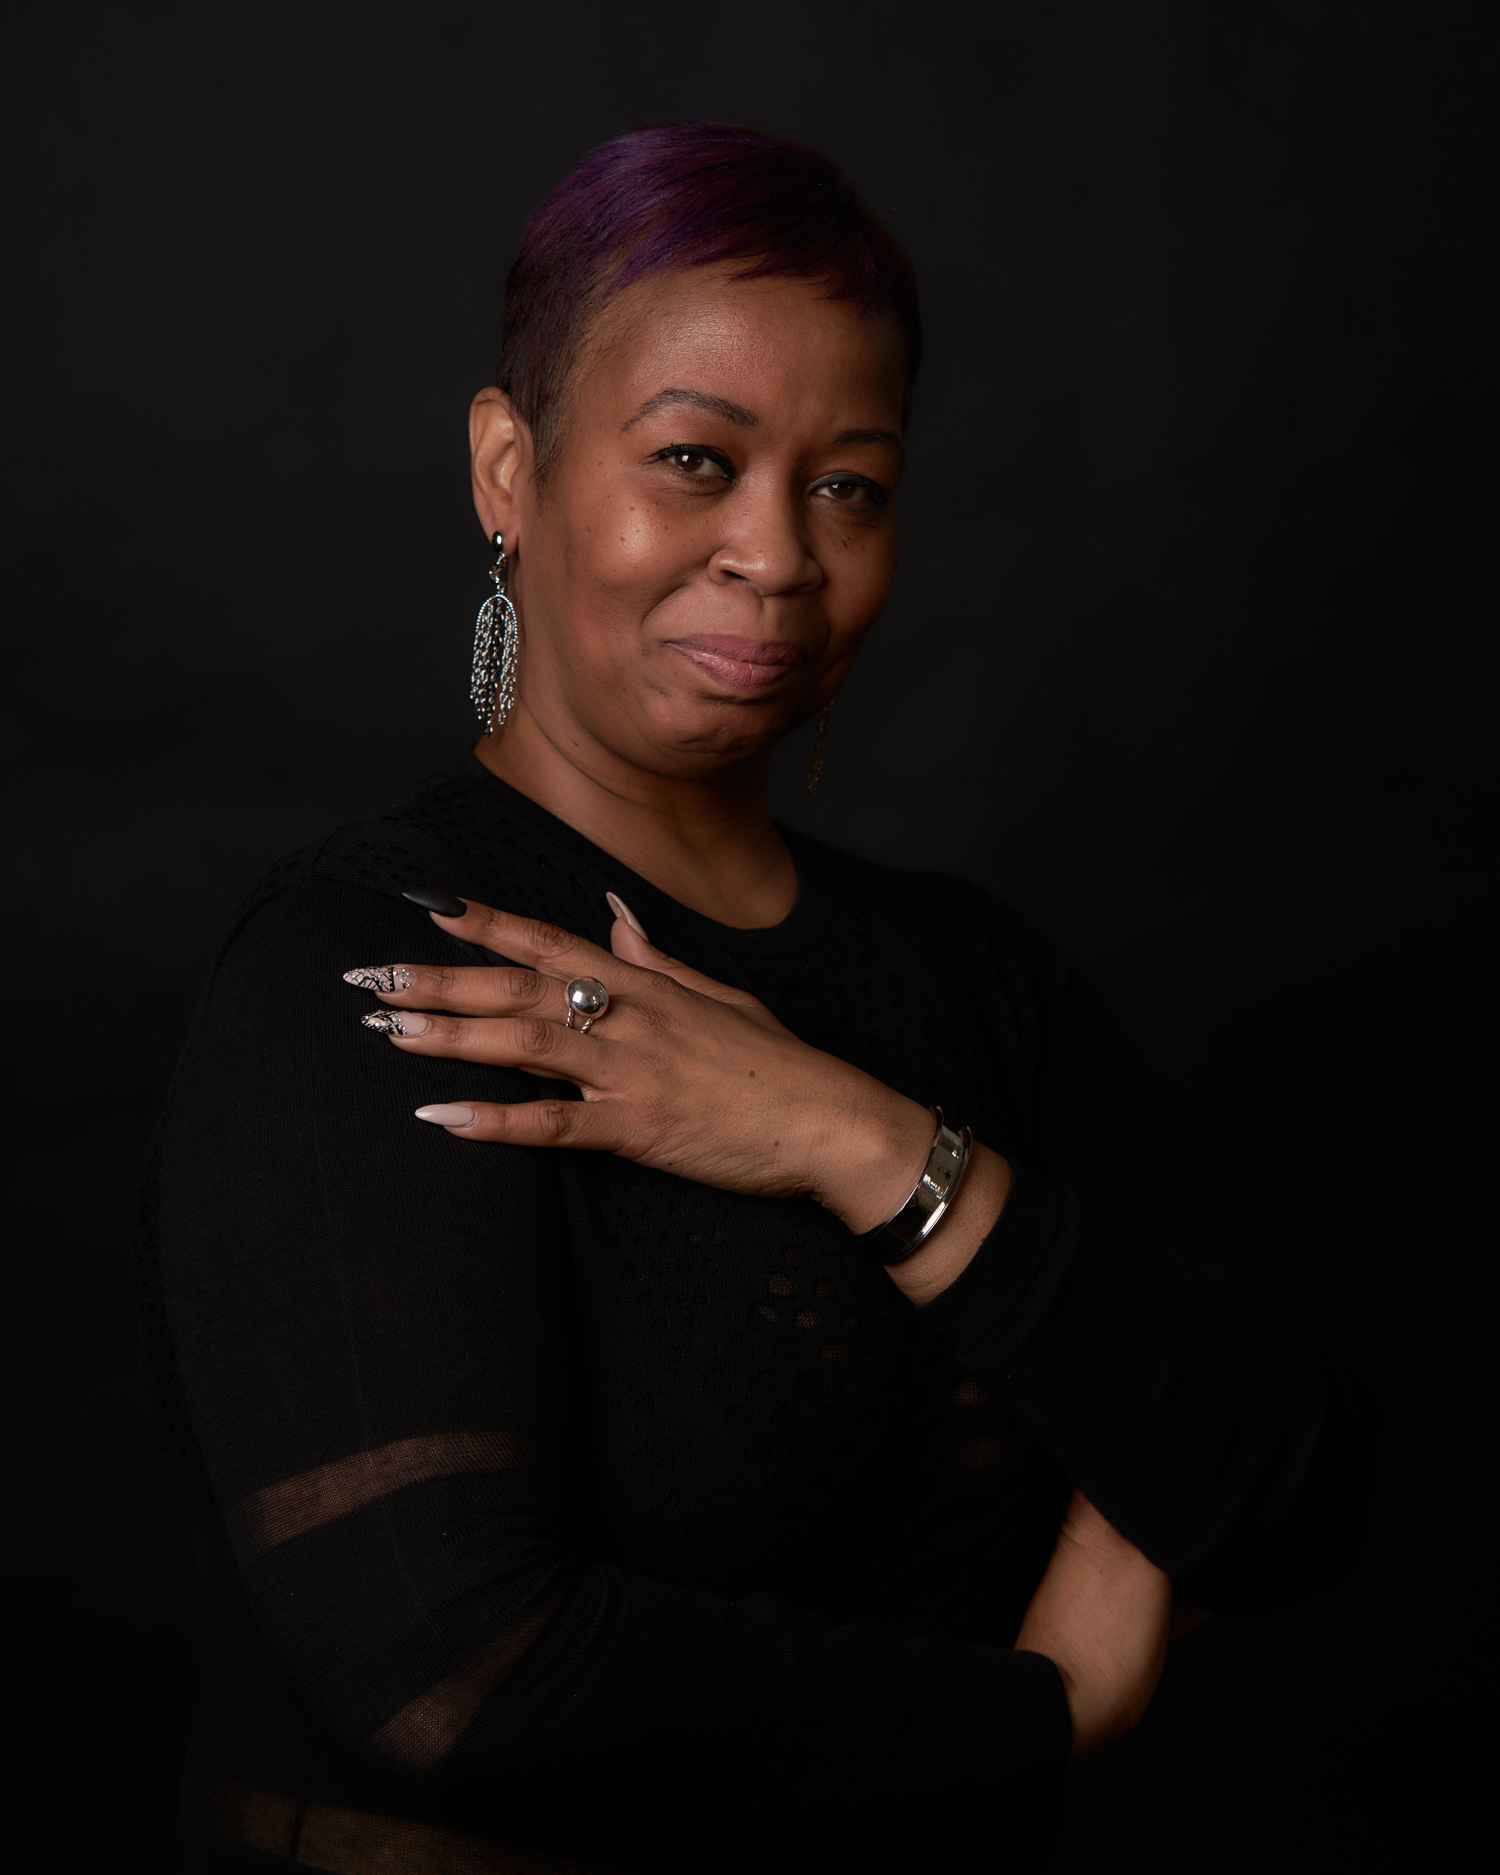 Kimberly Brickus- Blog post about her thoughts on Juneteenth